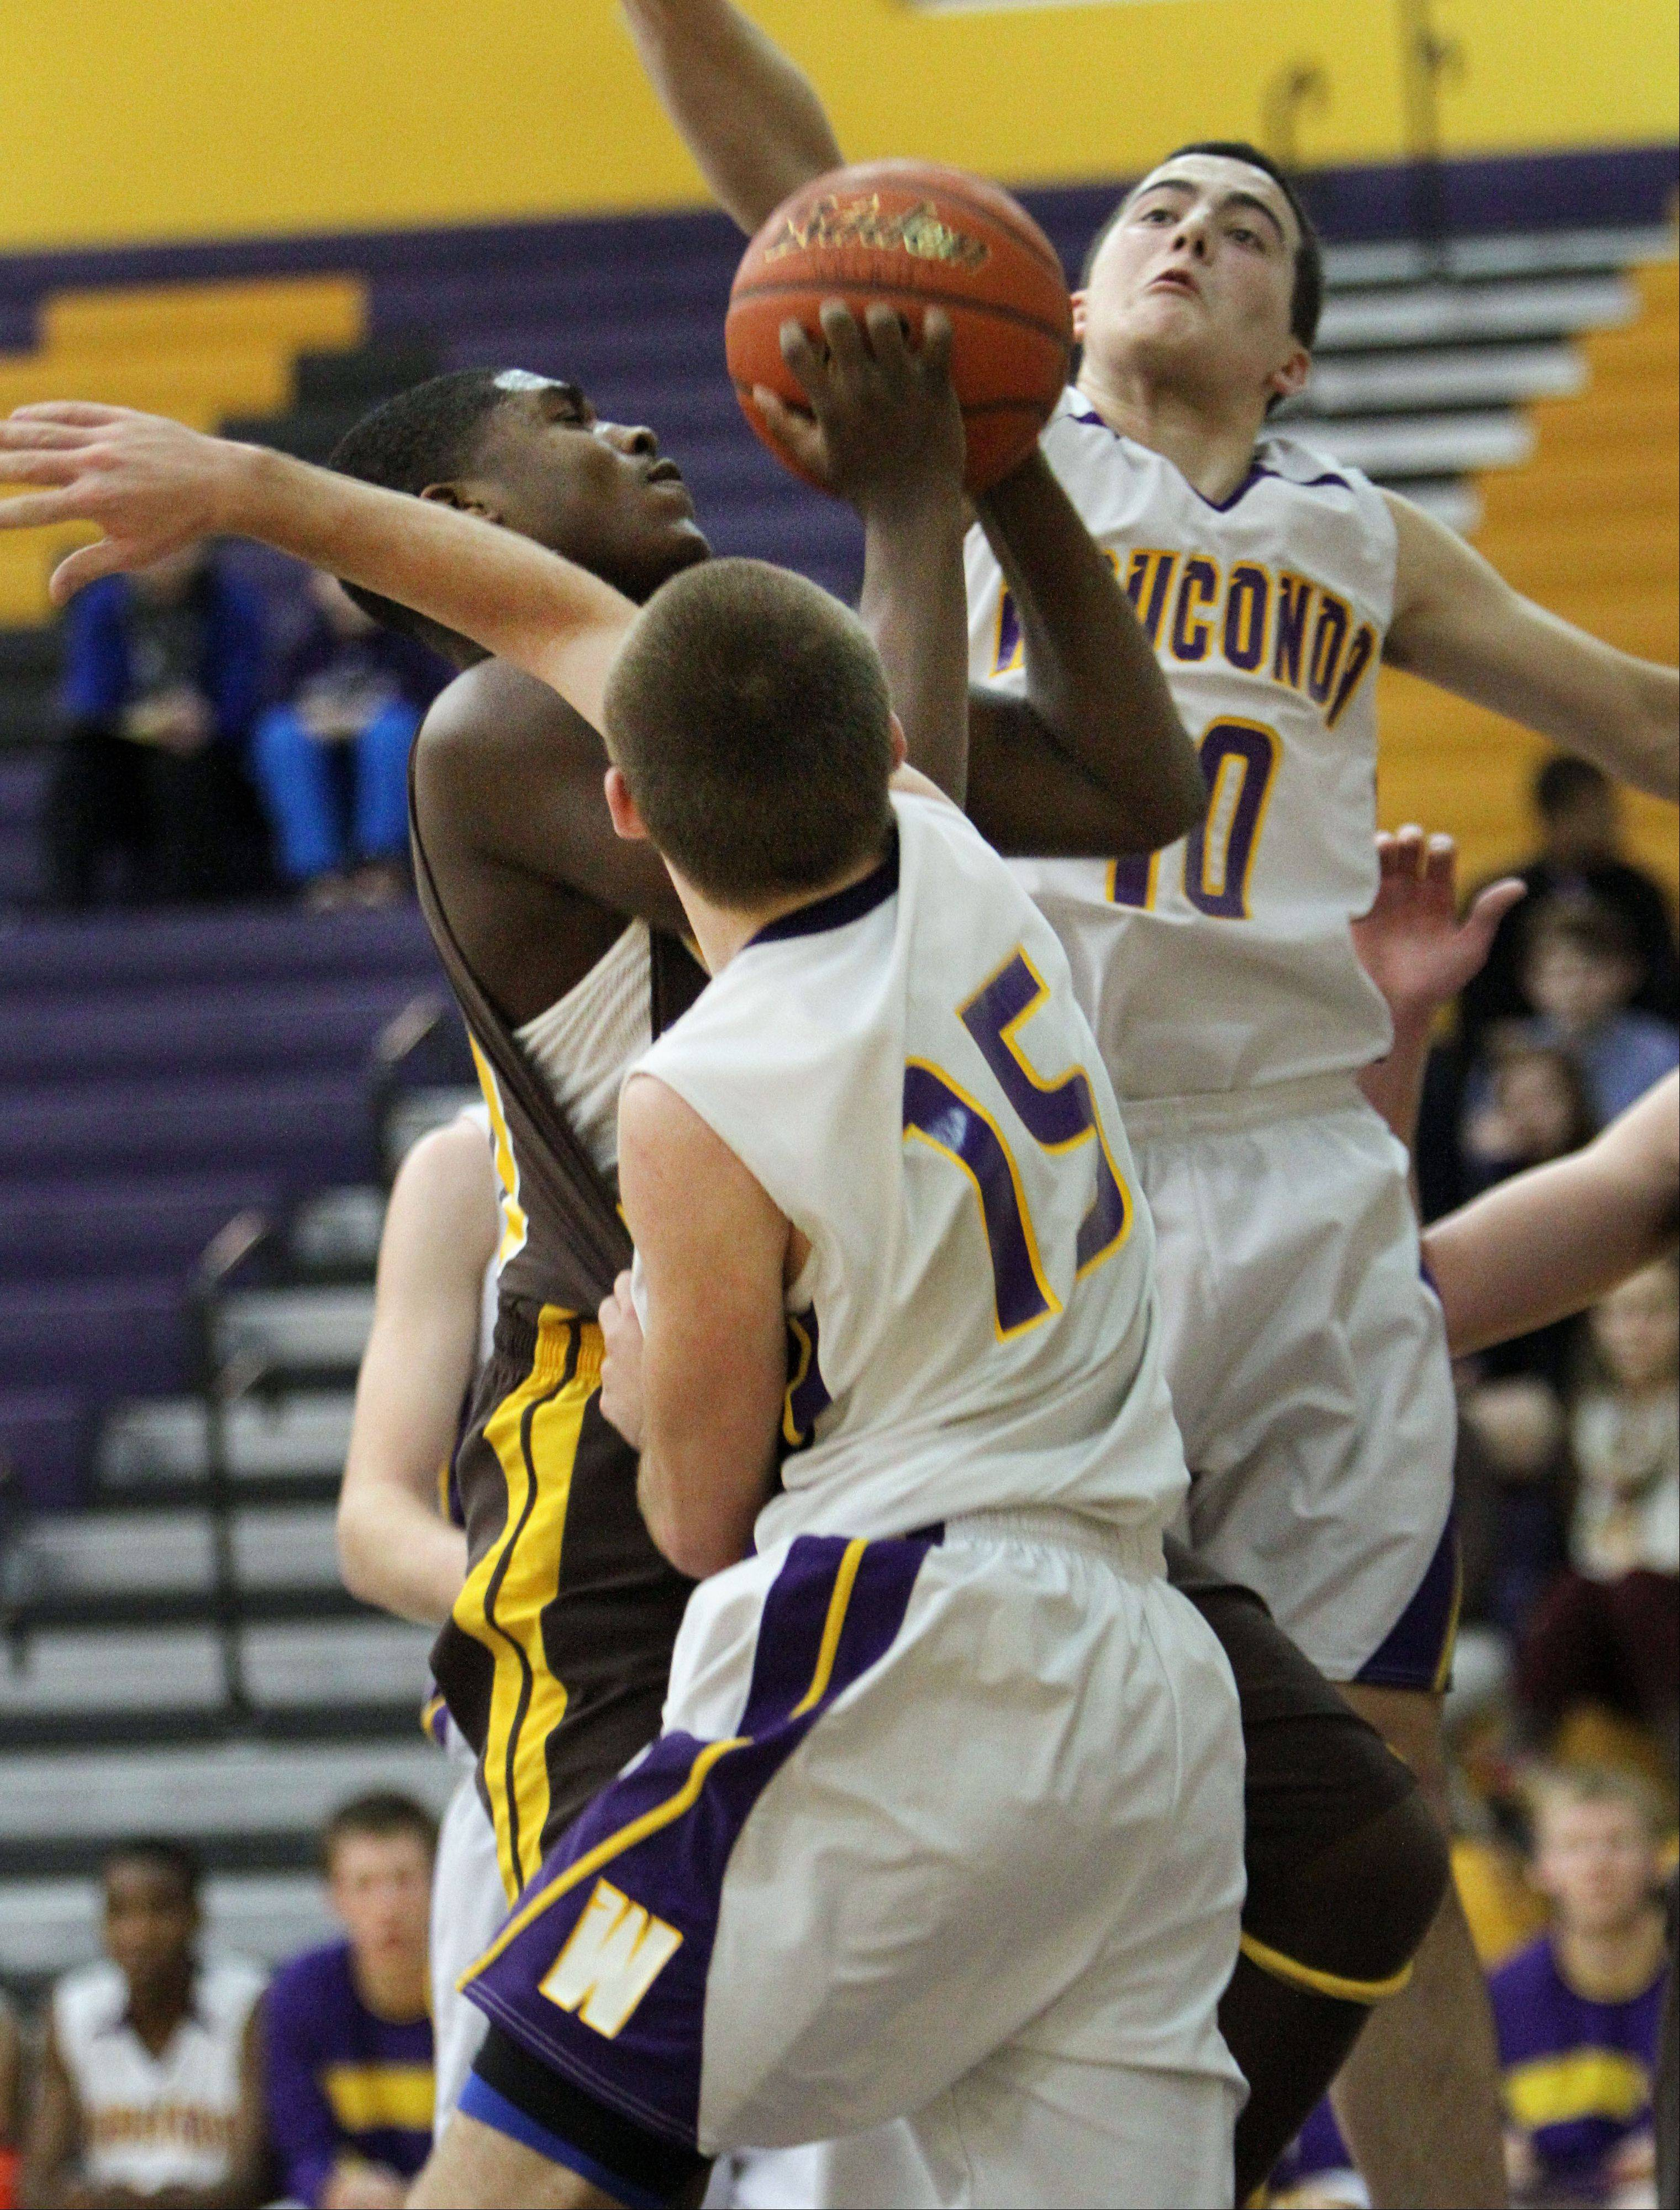 Carmel's Nickai Poser, left, drives on Wauconda's Austin Swenson and Keith Blomberg on Wednesday night in Wauconda.